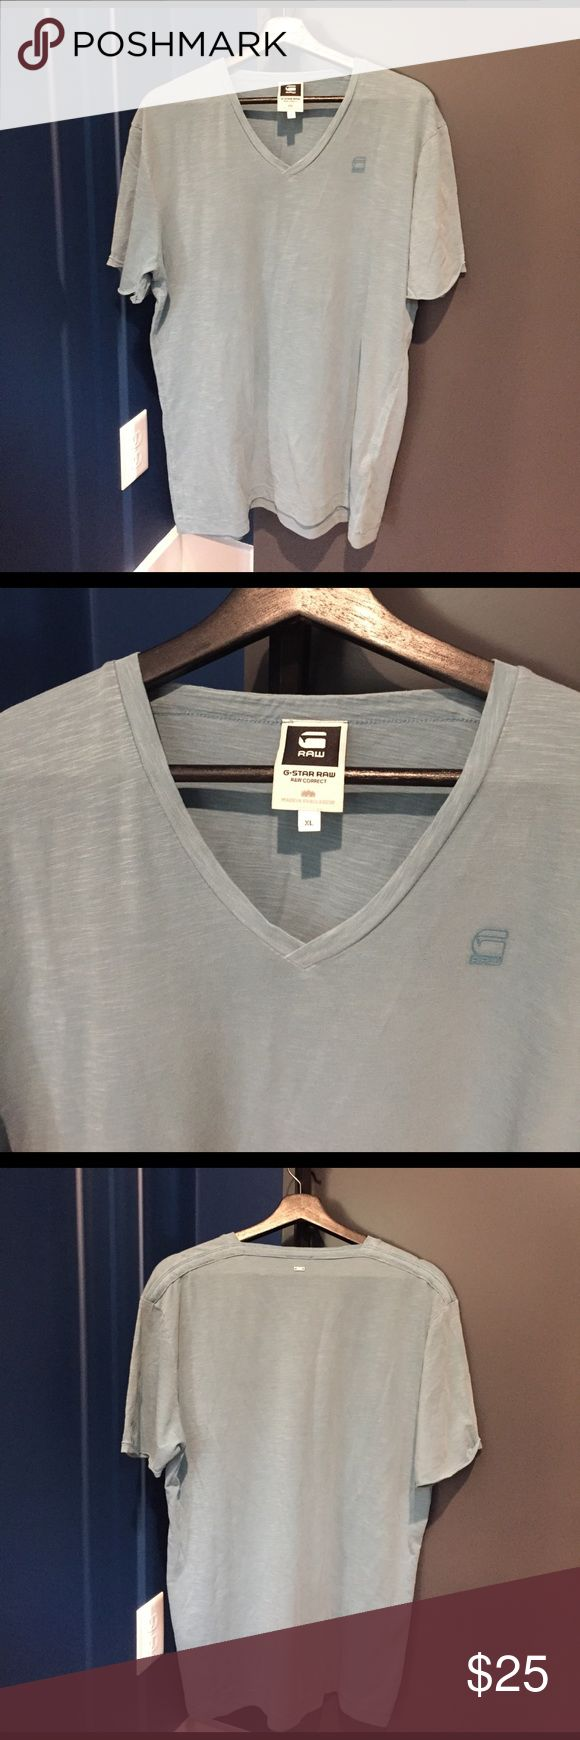 G Star Raw men's tshirt G Star Raw men's tshirt - Raw Correct - Size XL - color: light blue - is in great condition G Star Raw Shirts Tees - Short Sleeve